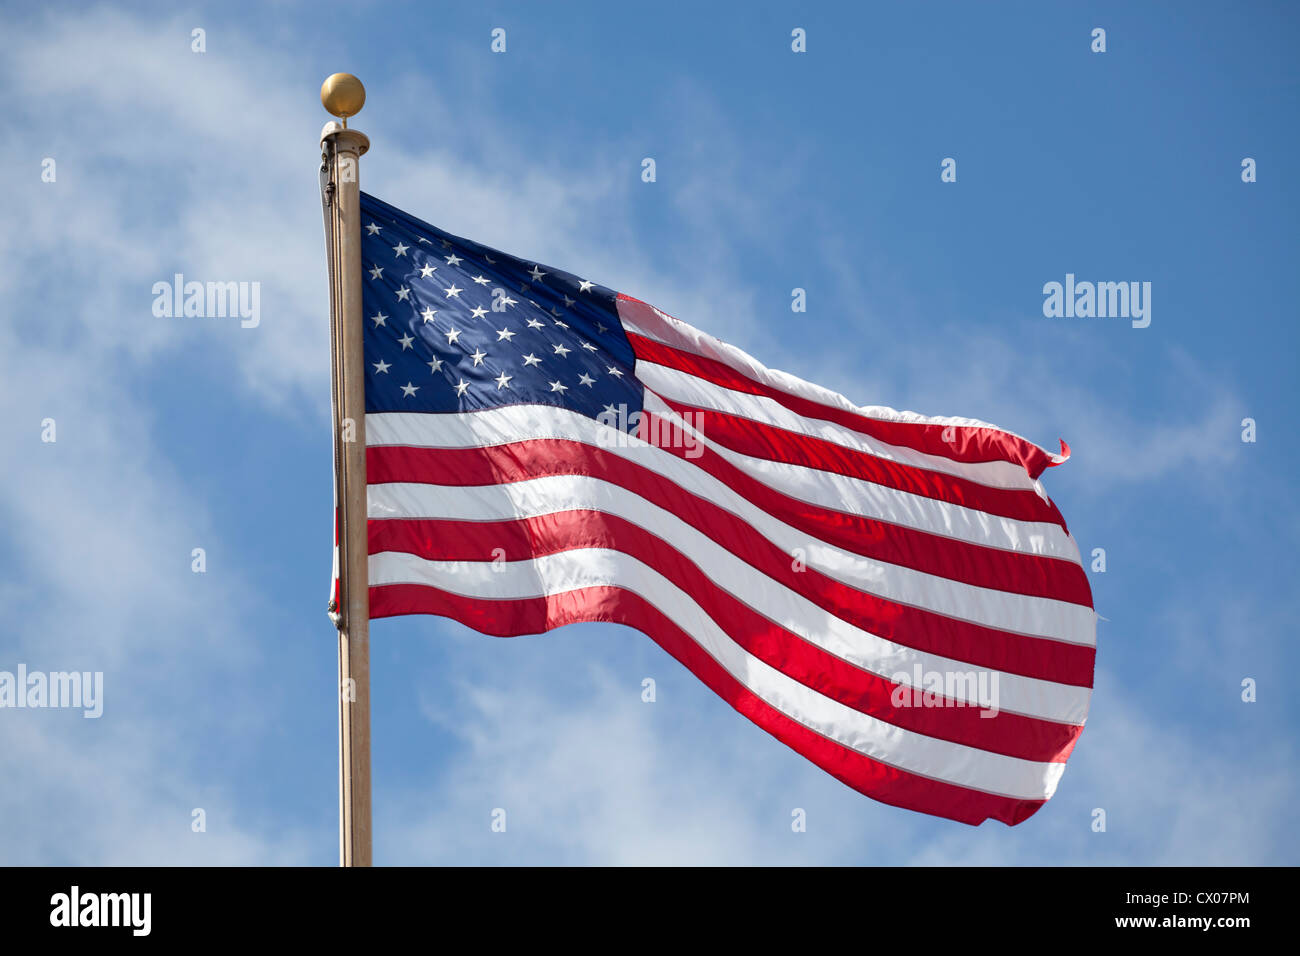 United States national flag Photo Stock